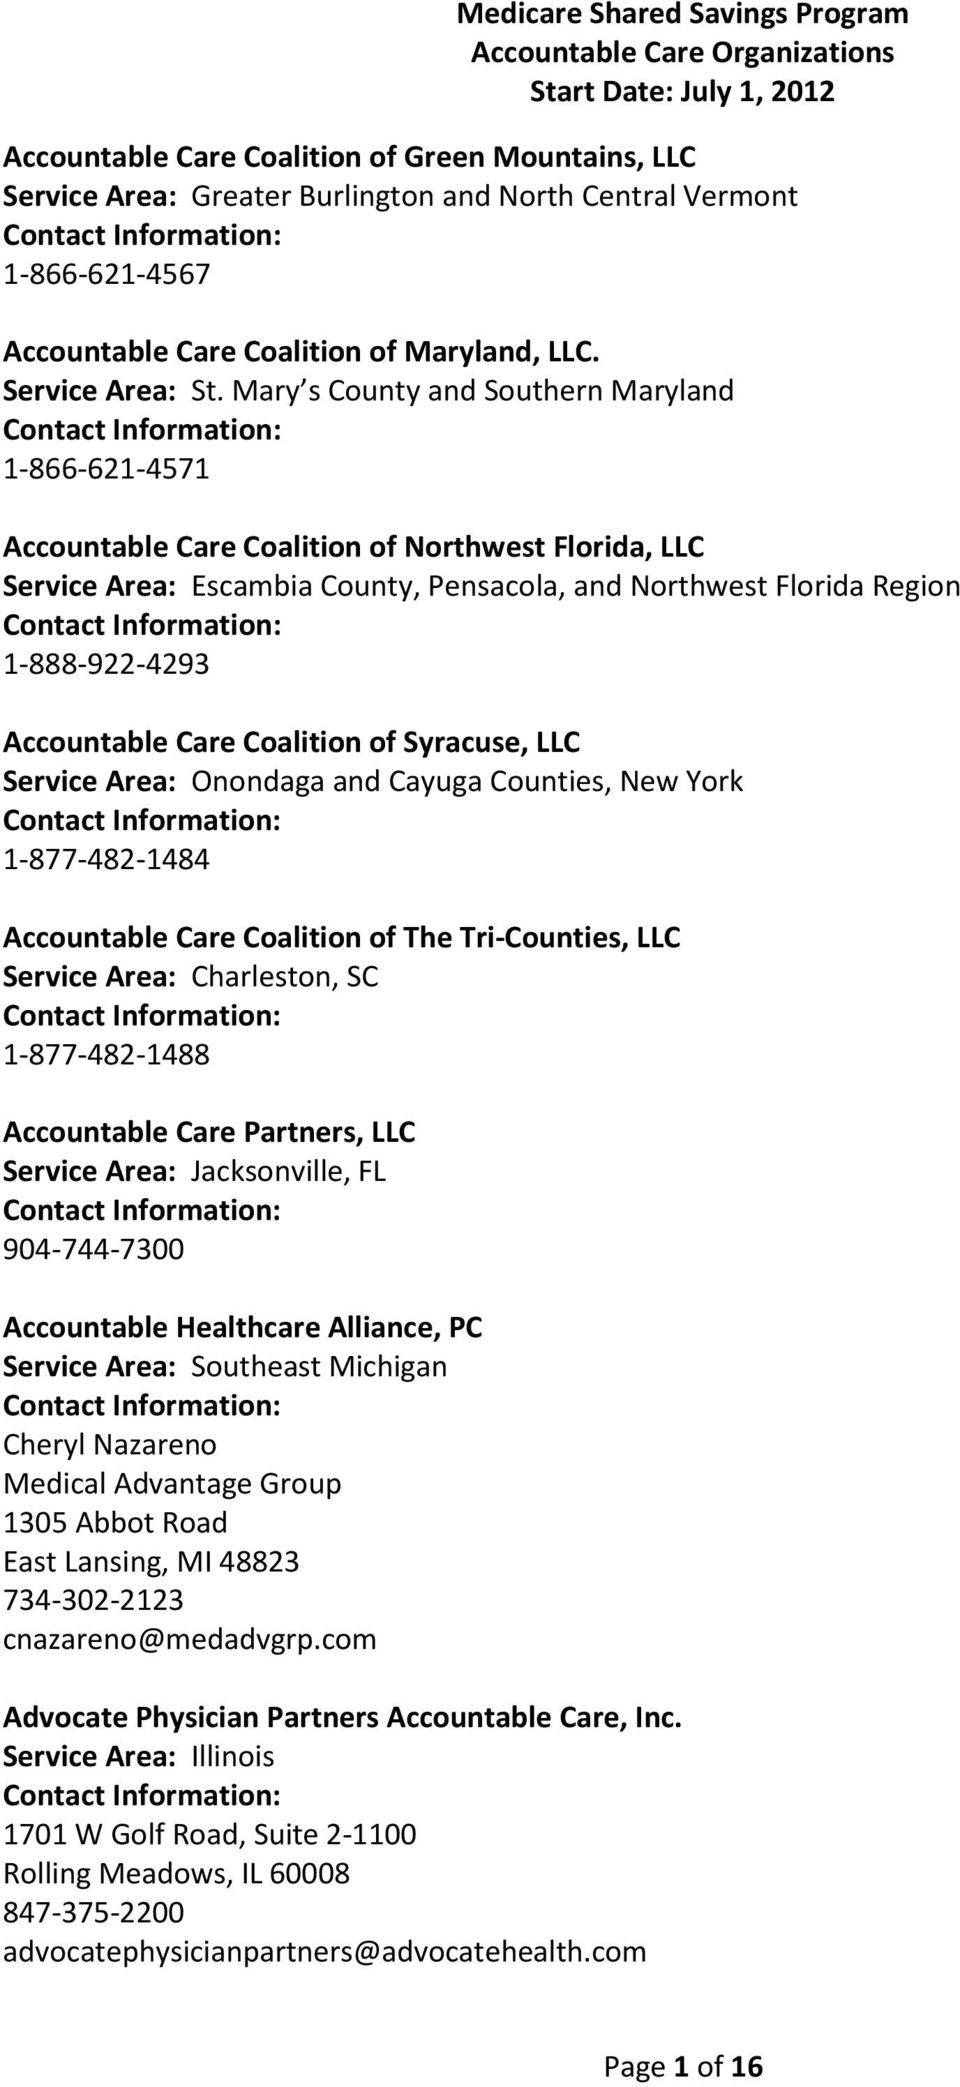 Accountable Care Coalition of Syracuse, LLC Service Area: Onondaga and Cayuga Counties, New York 1-877-482-1484 Accountable Care Coalition of The Tri-Counties, LLC Service Area: Charleston, SC